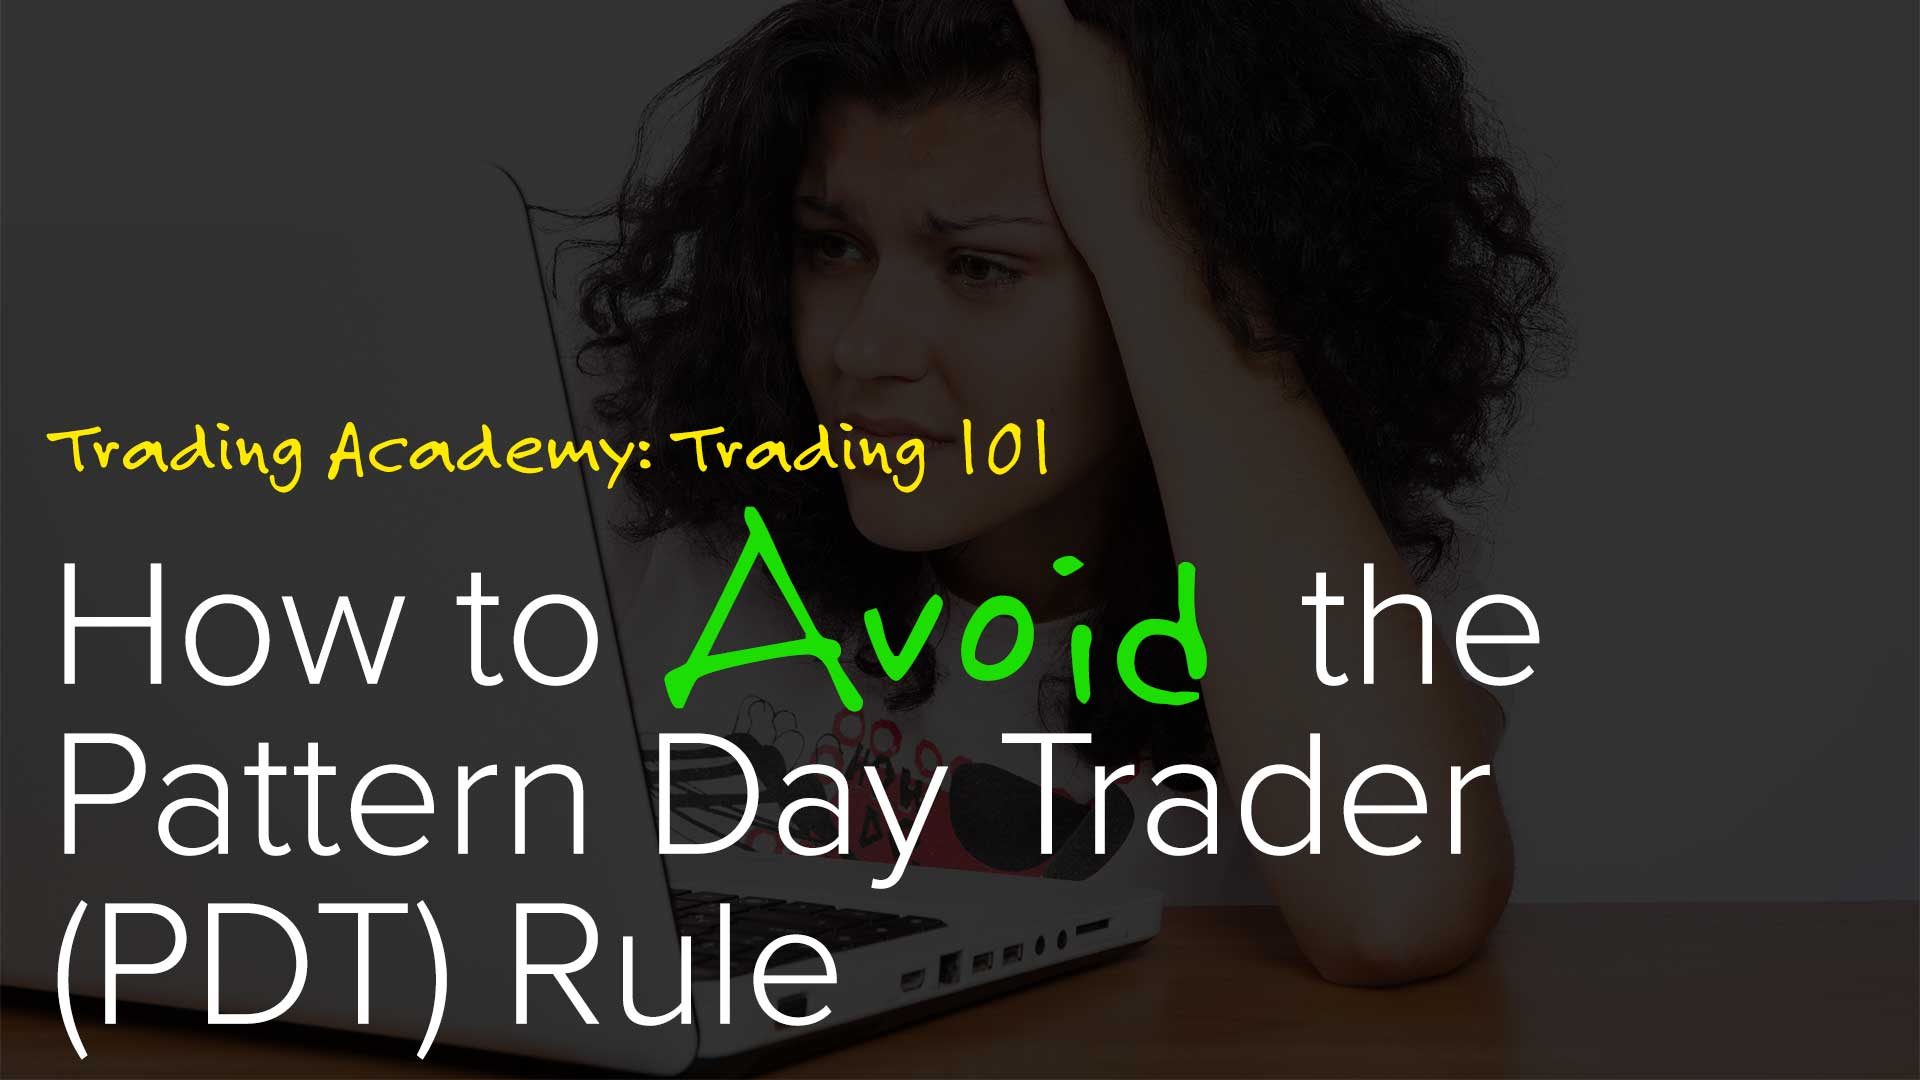 Investment Strategy Trading Academy 101: Avoid The Pattern Day Trader Rule